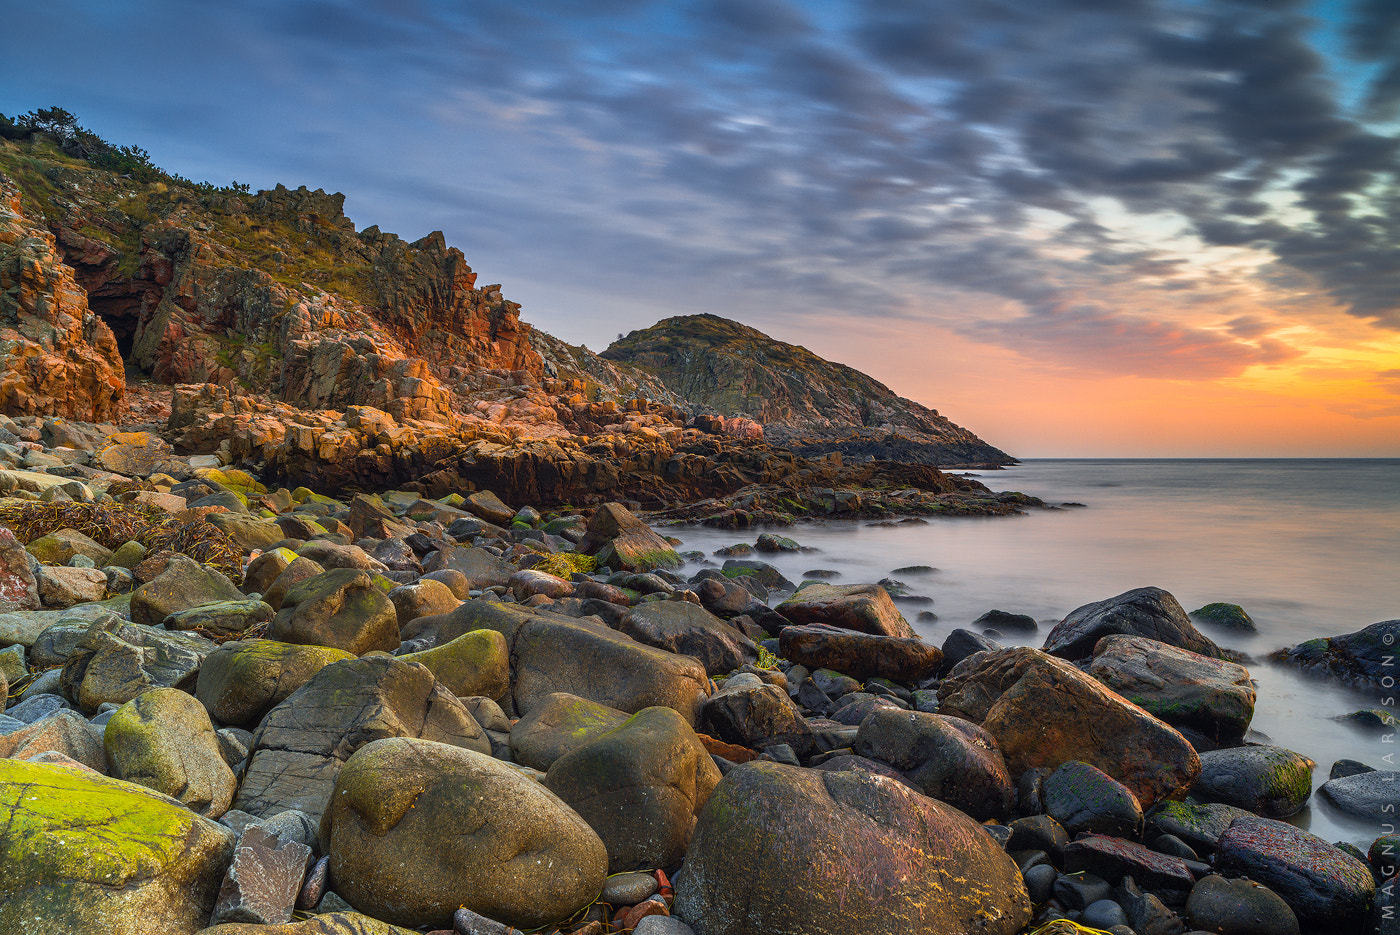 Photograph Sunset at Silver Cave by Magnus Larsson on 500px